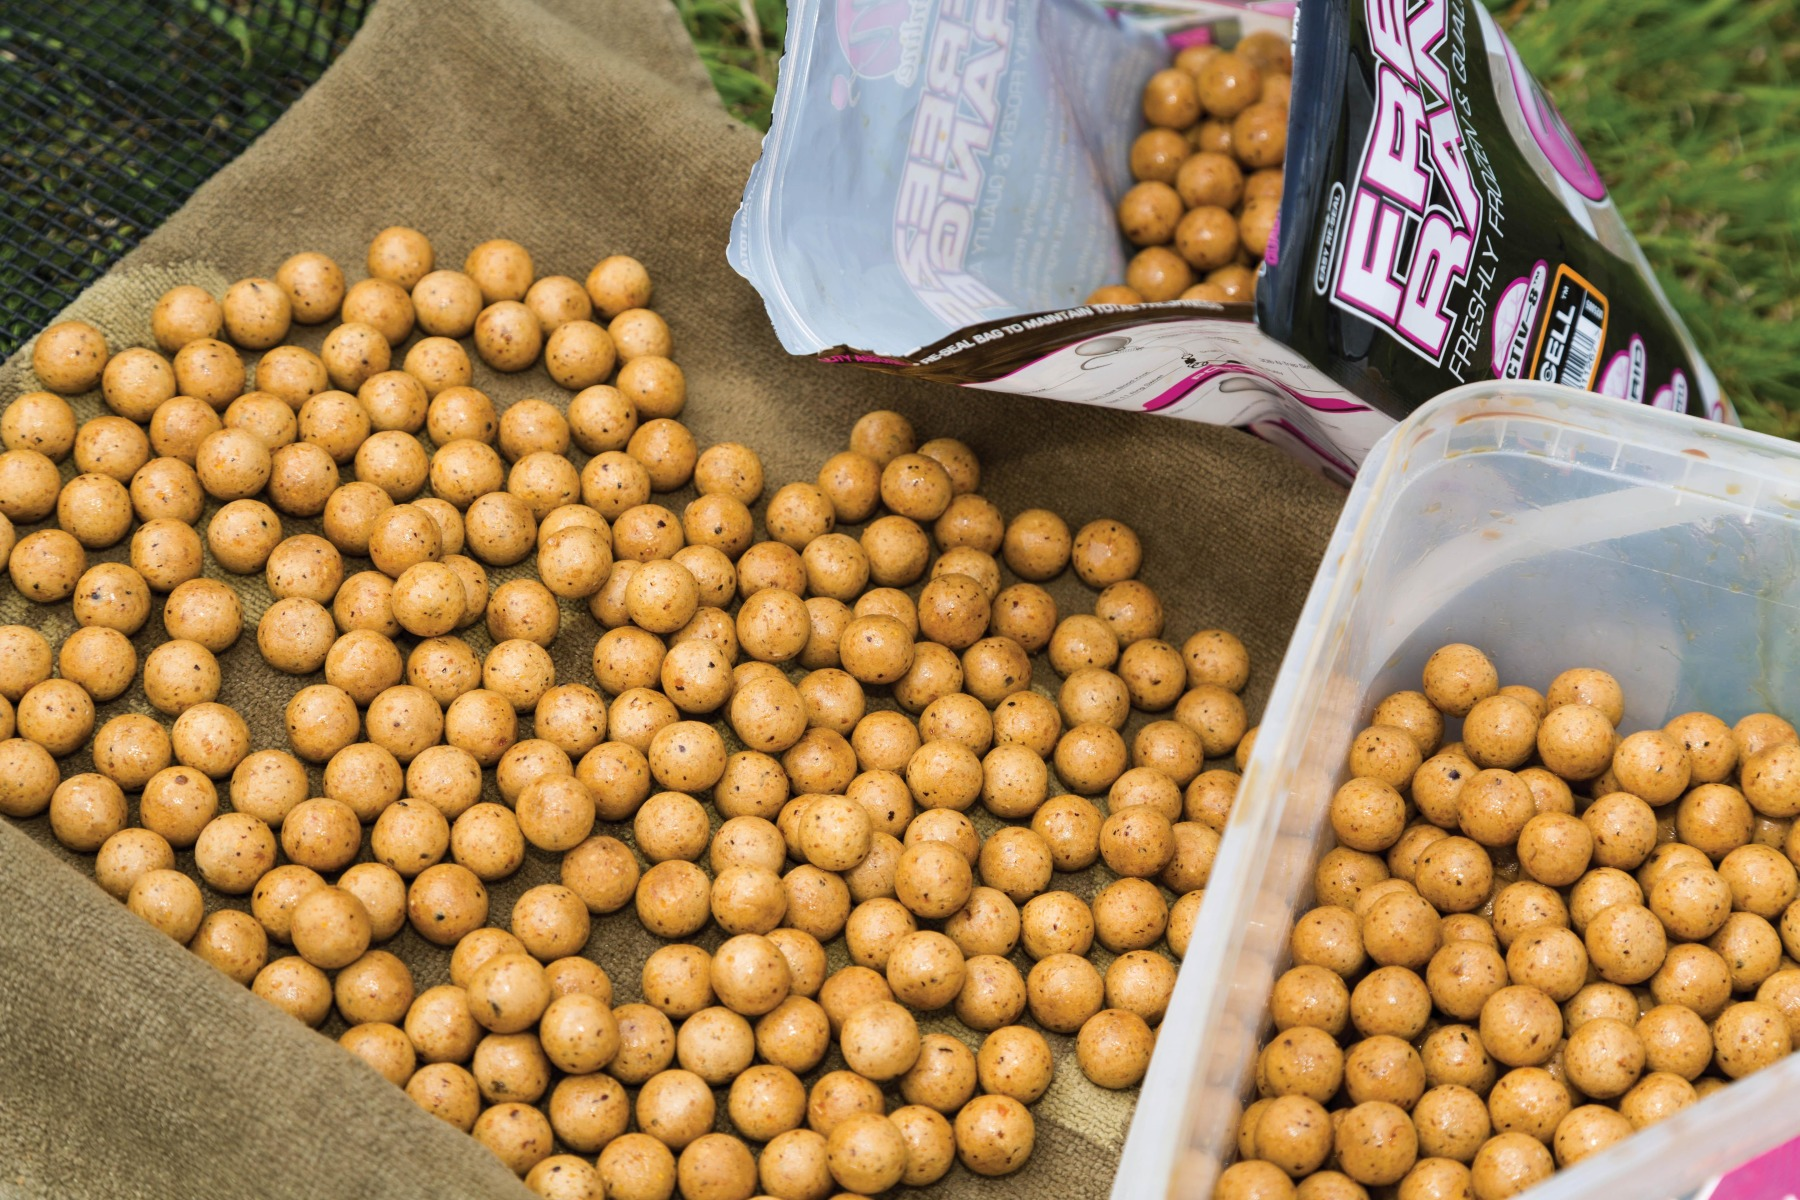 4. Dry the baits again for a couple of hours, then either refreeze or leave in the bucket ready to use!